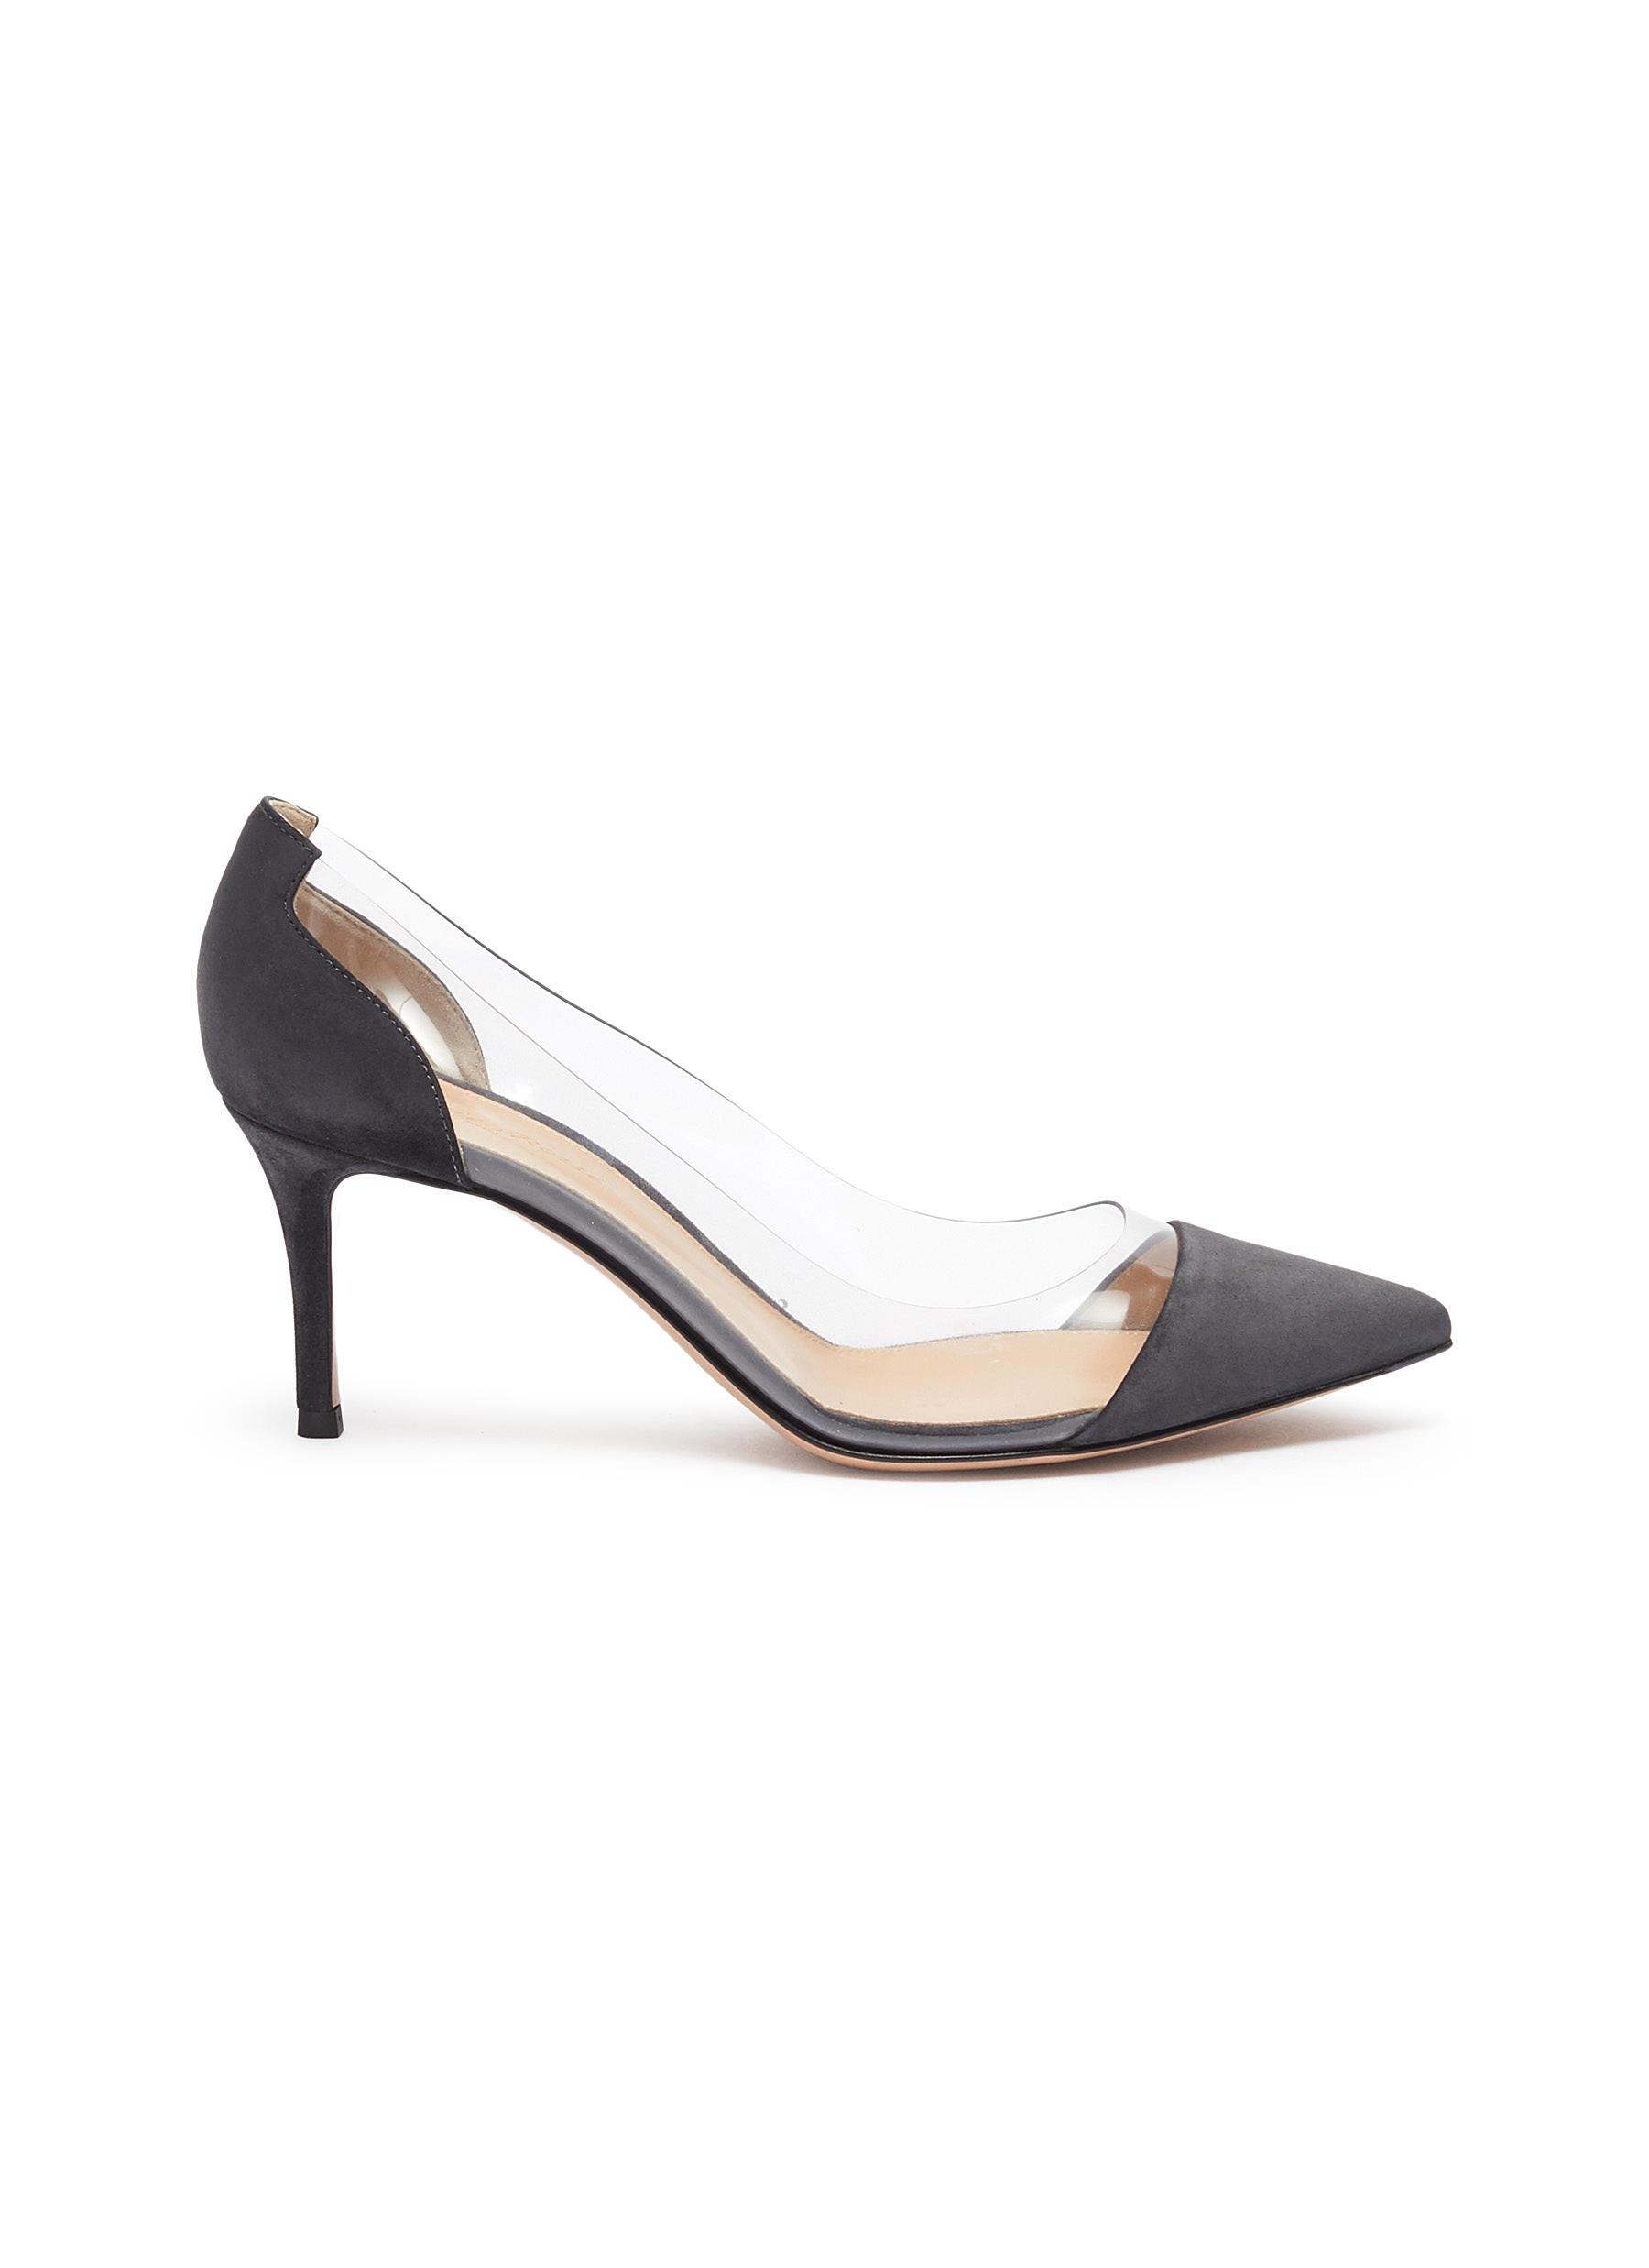 Plexi PVC and suede pumps by Gianvito Rossi